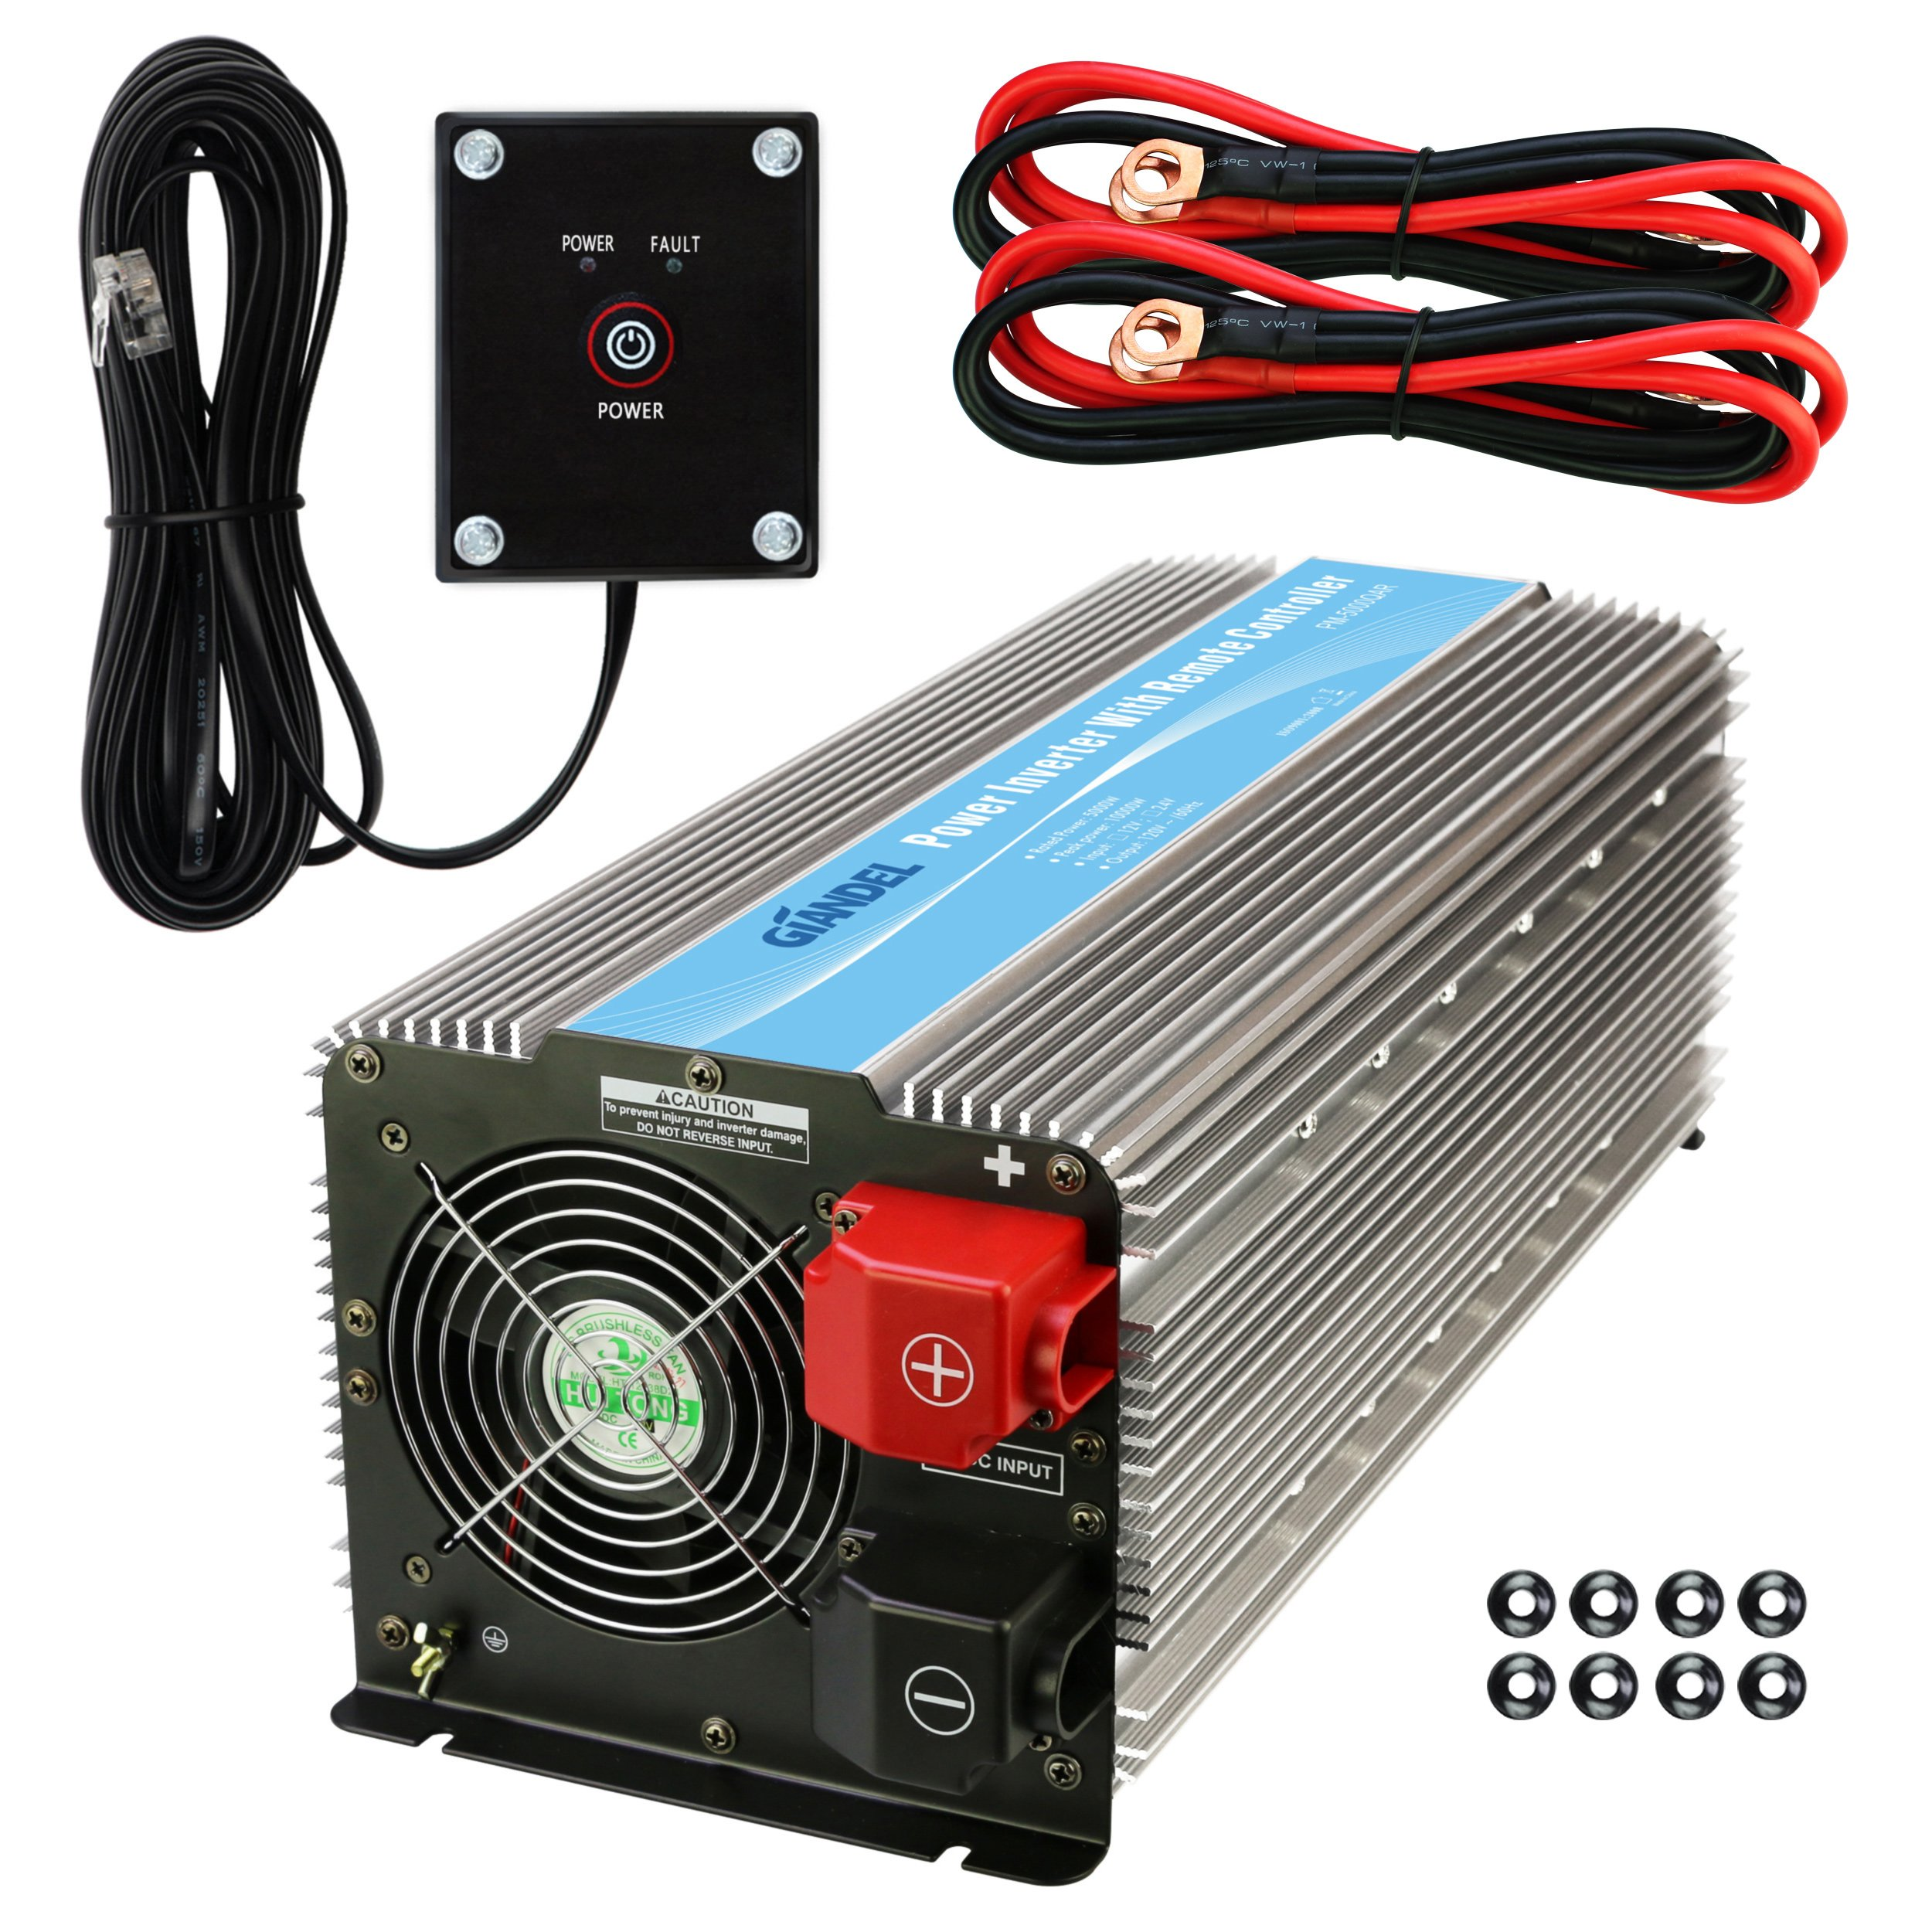 Giandel 5000W Heavy Duty Power Inverter 12V DC to 110V 120V AC with Remote Control and 4 AC Outlets & USB Port for RV Truck Boat